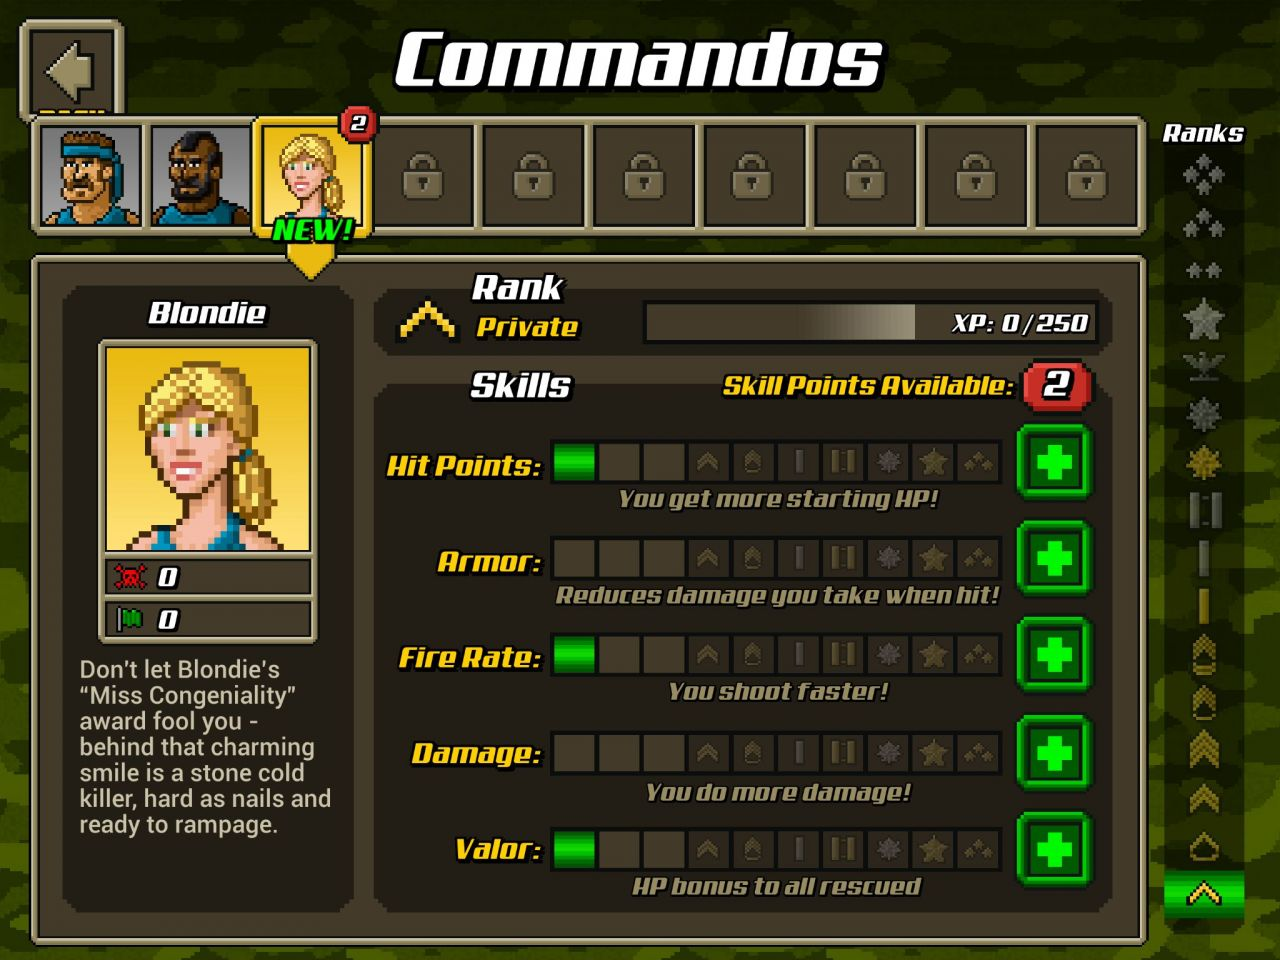 KickAss Commandos (copie d'écran 16 sur Android)